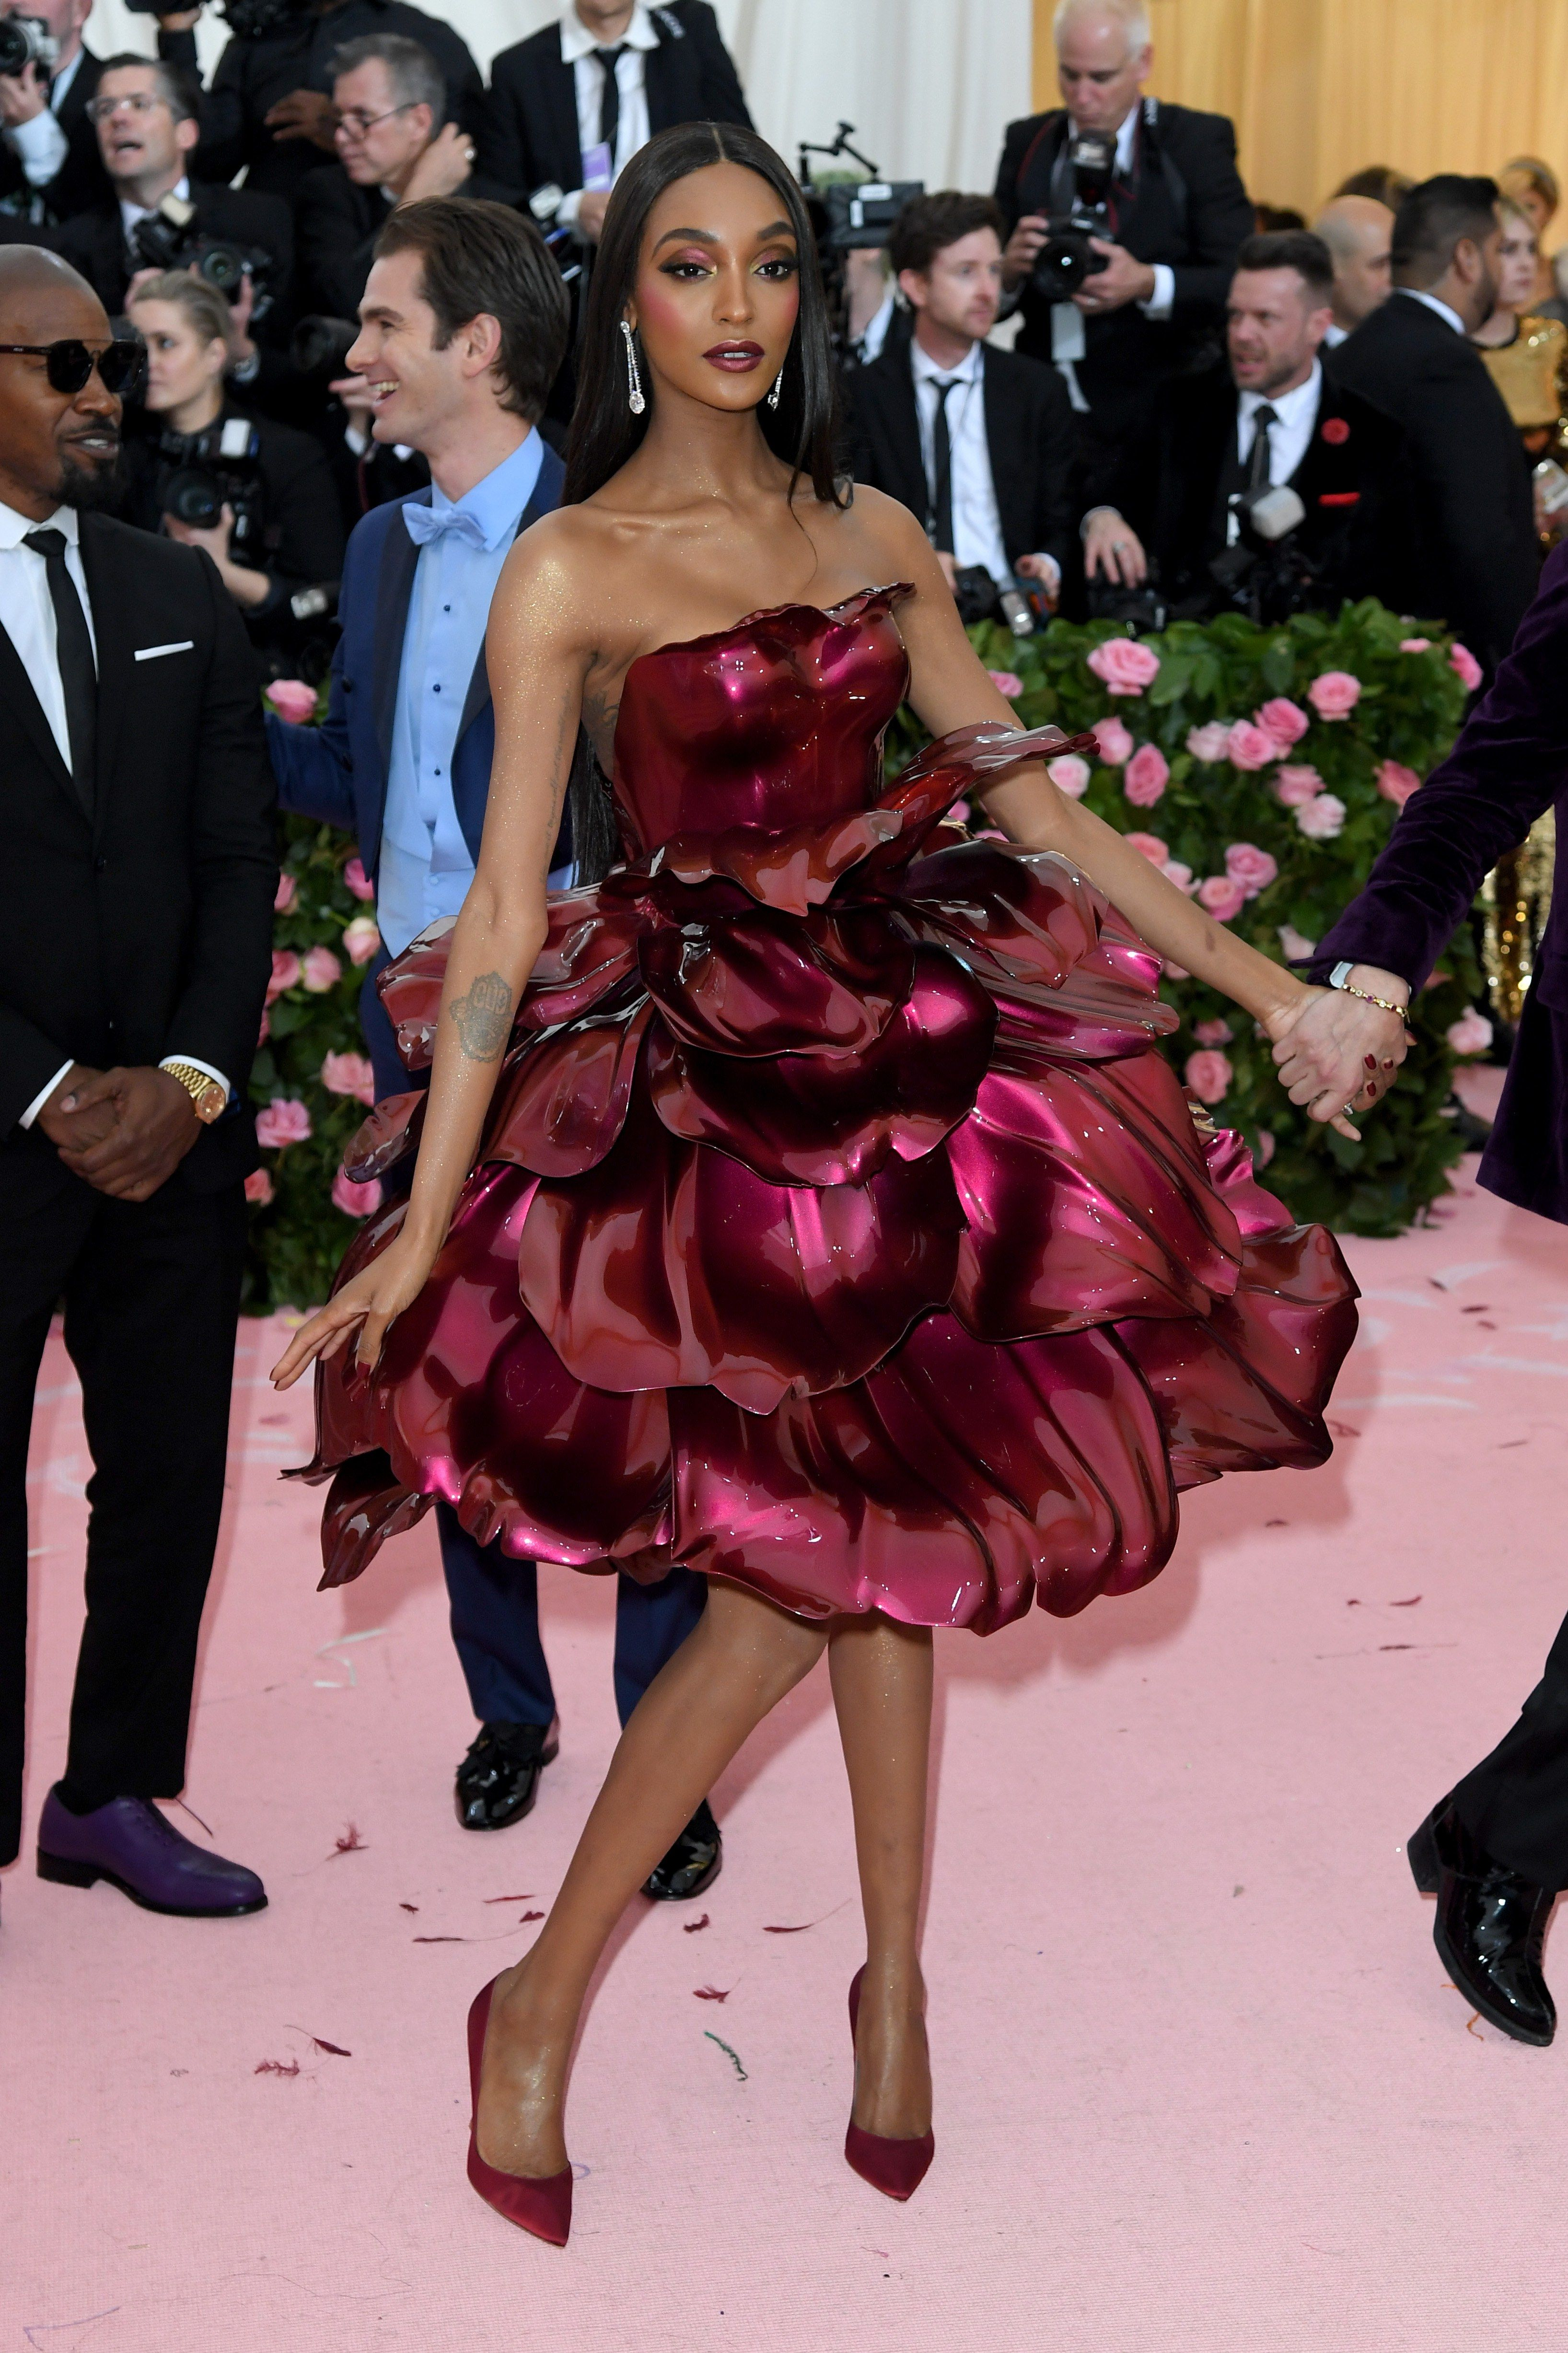 The Most Shocking Beauty Transformations From The Met Gala 2019 Kylie Jenner Bella Hadid And More Met Gala Looks Celebrity Dresses Met Gala